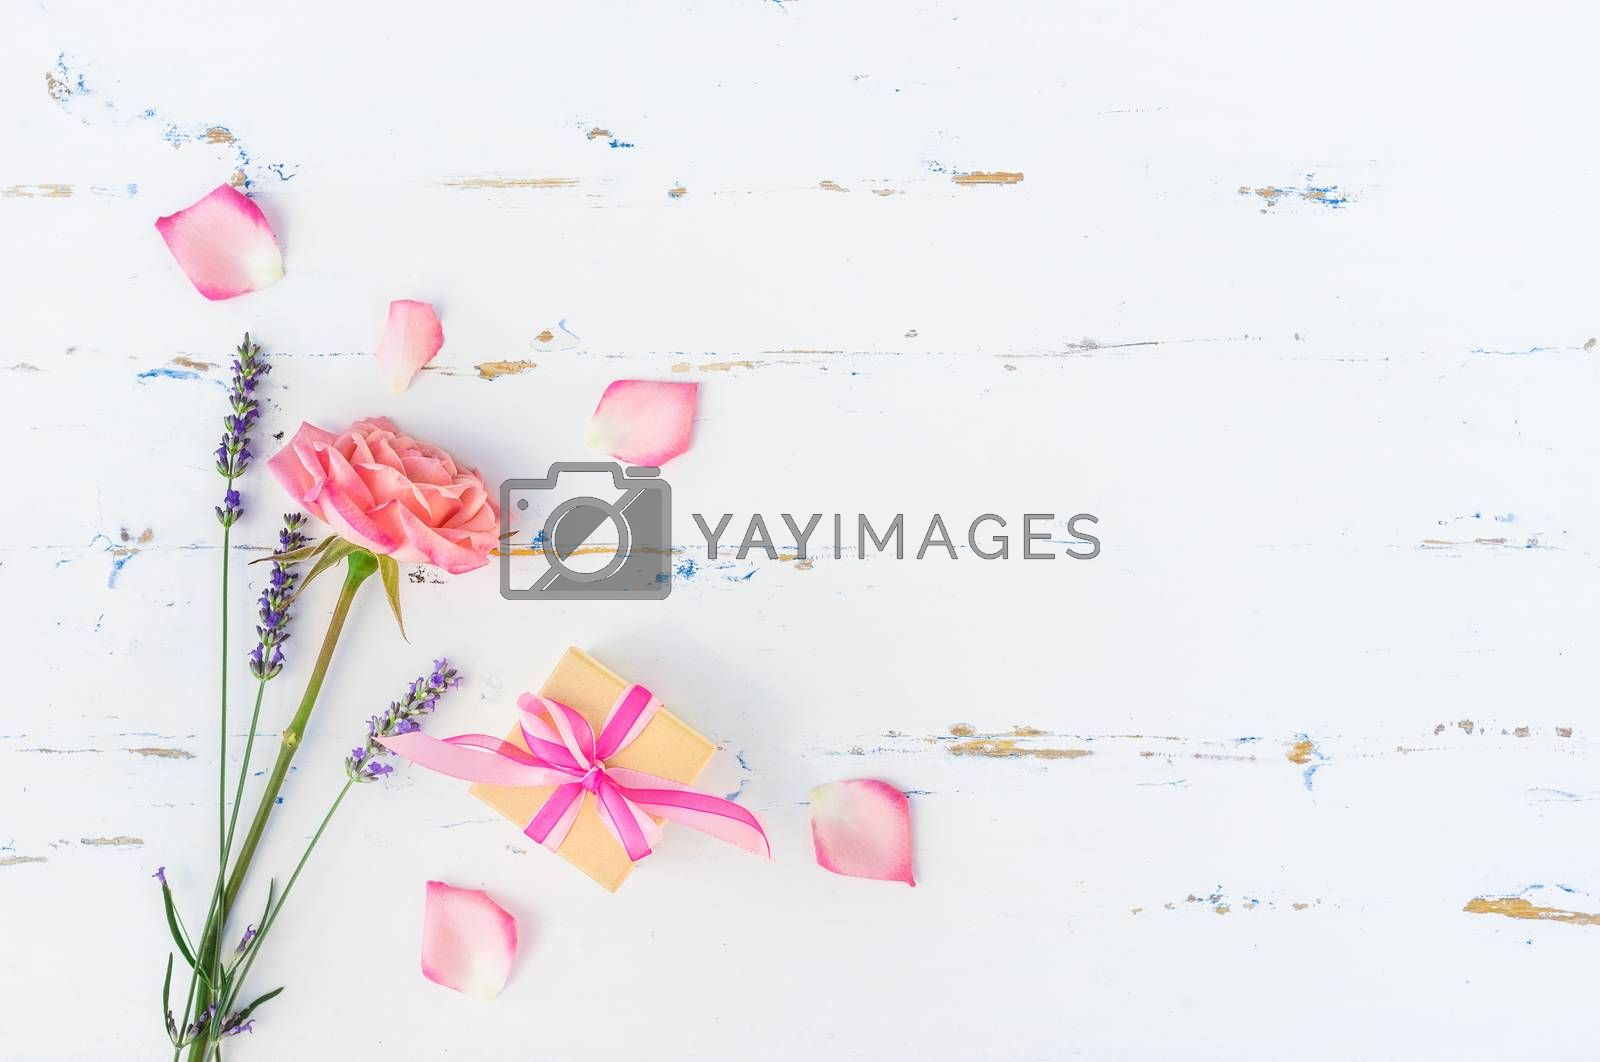 Romantic bunch of flowers with rose and lavender and small present on white wooden background with copy space